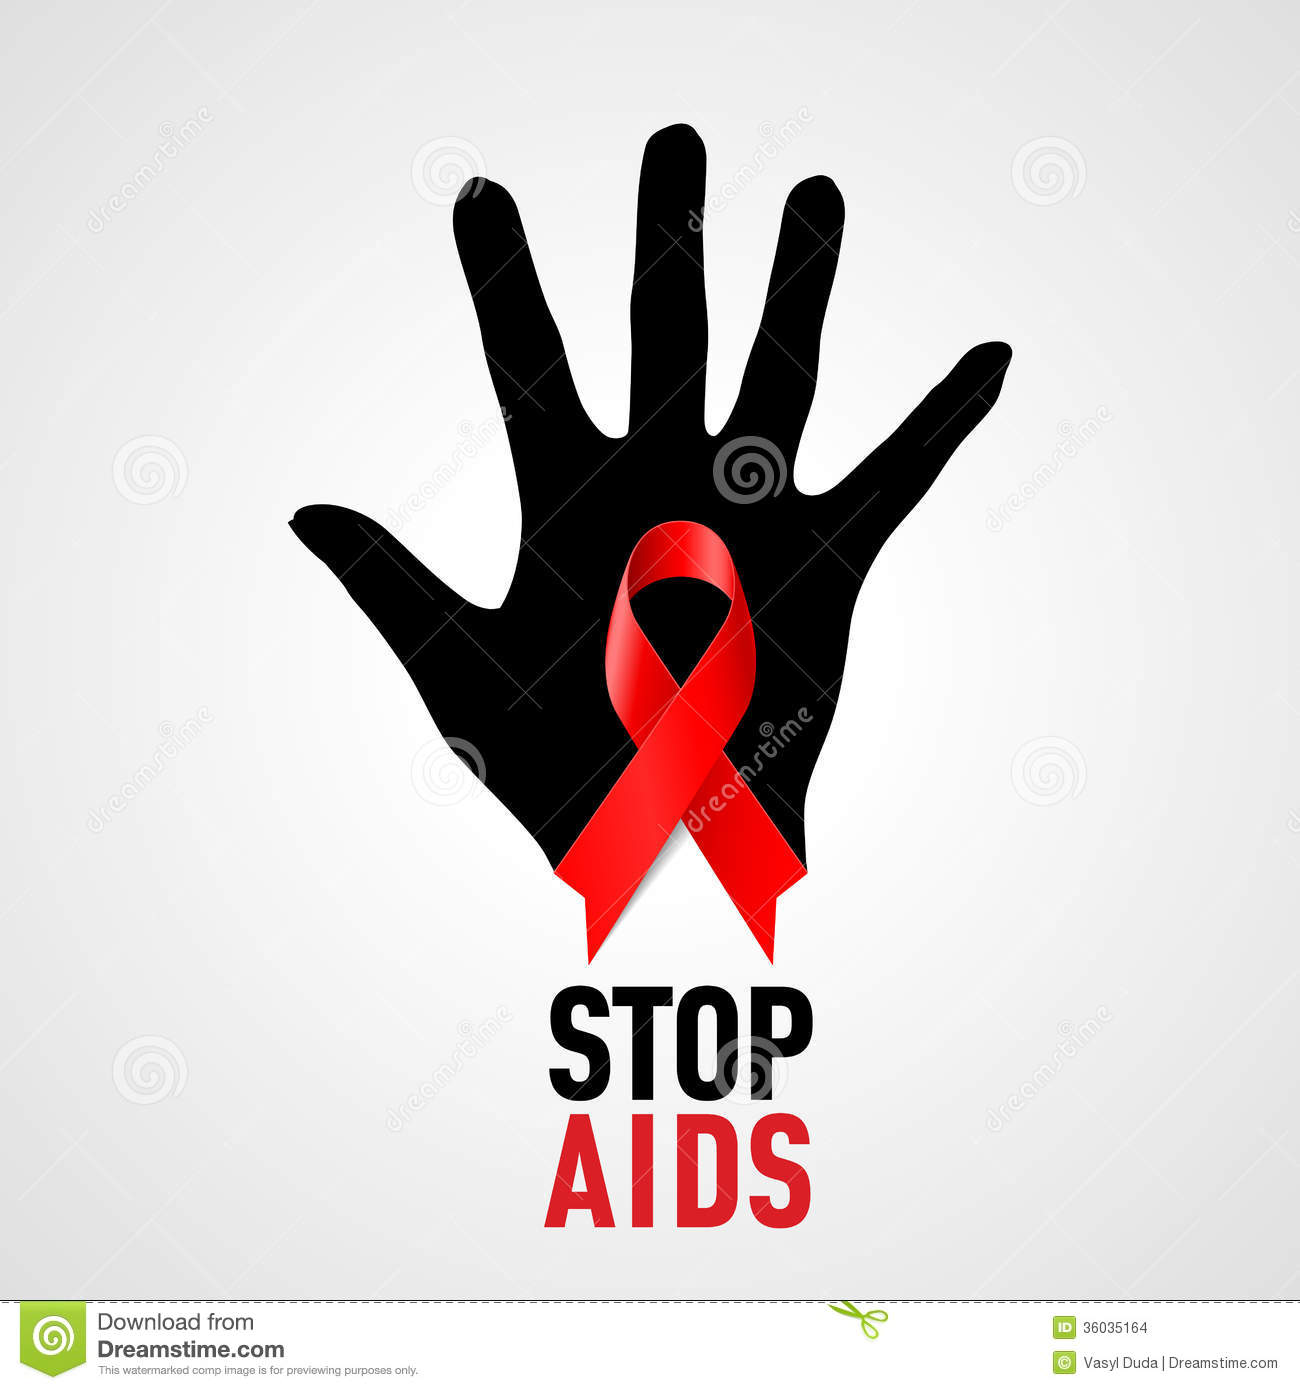 how to avoid hiv and aids